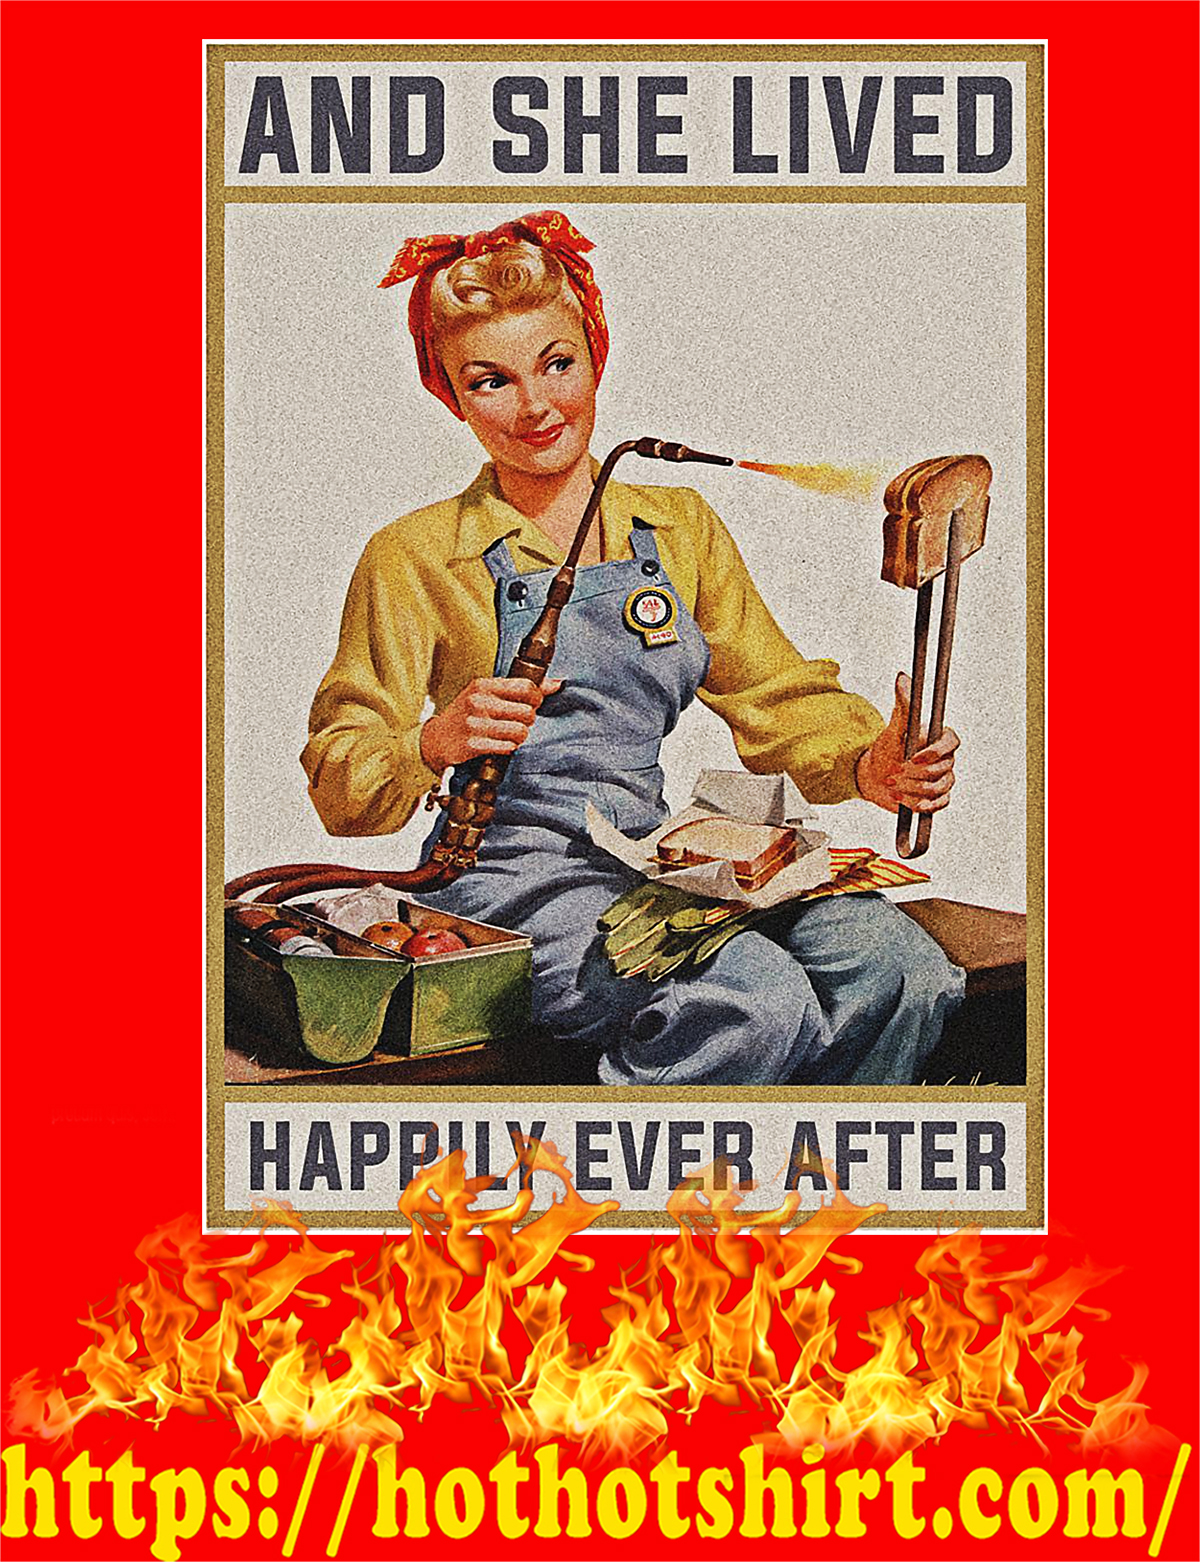 Welder woman And she lived happily ever after poster - A3